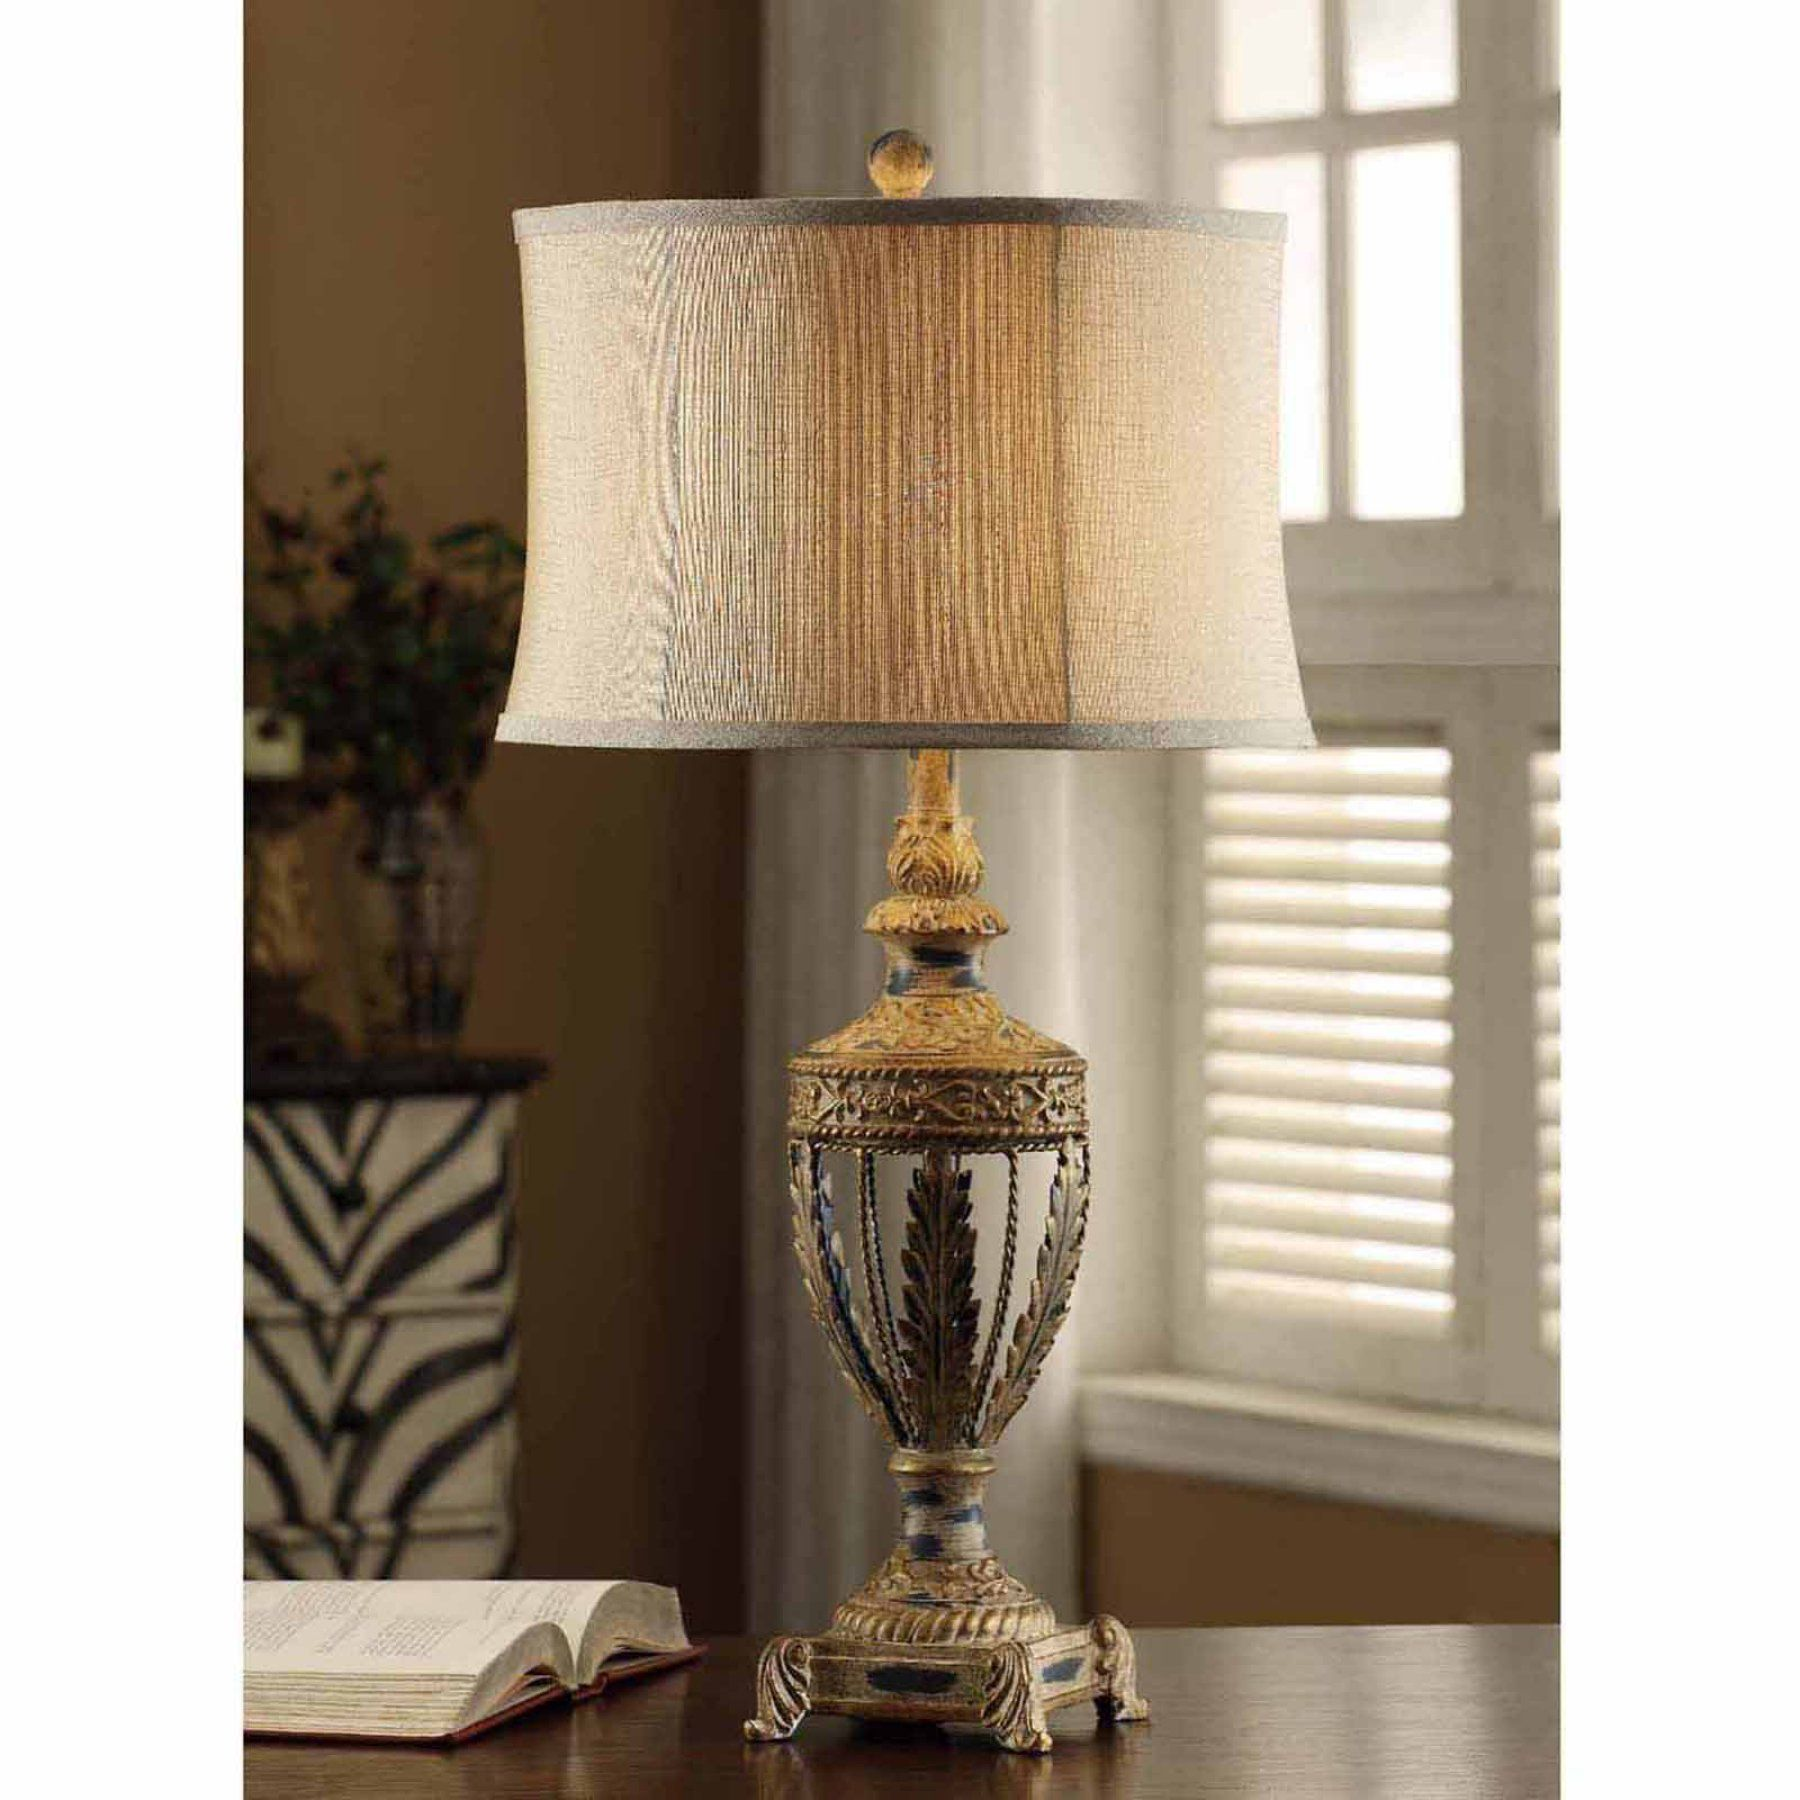 Crestview collection classics table lamp cvaer611 products crestview collection classics table lamp cvaer611 geotapseo Gallery